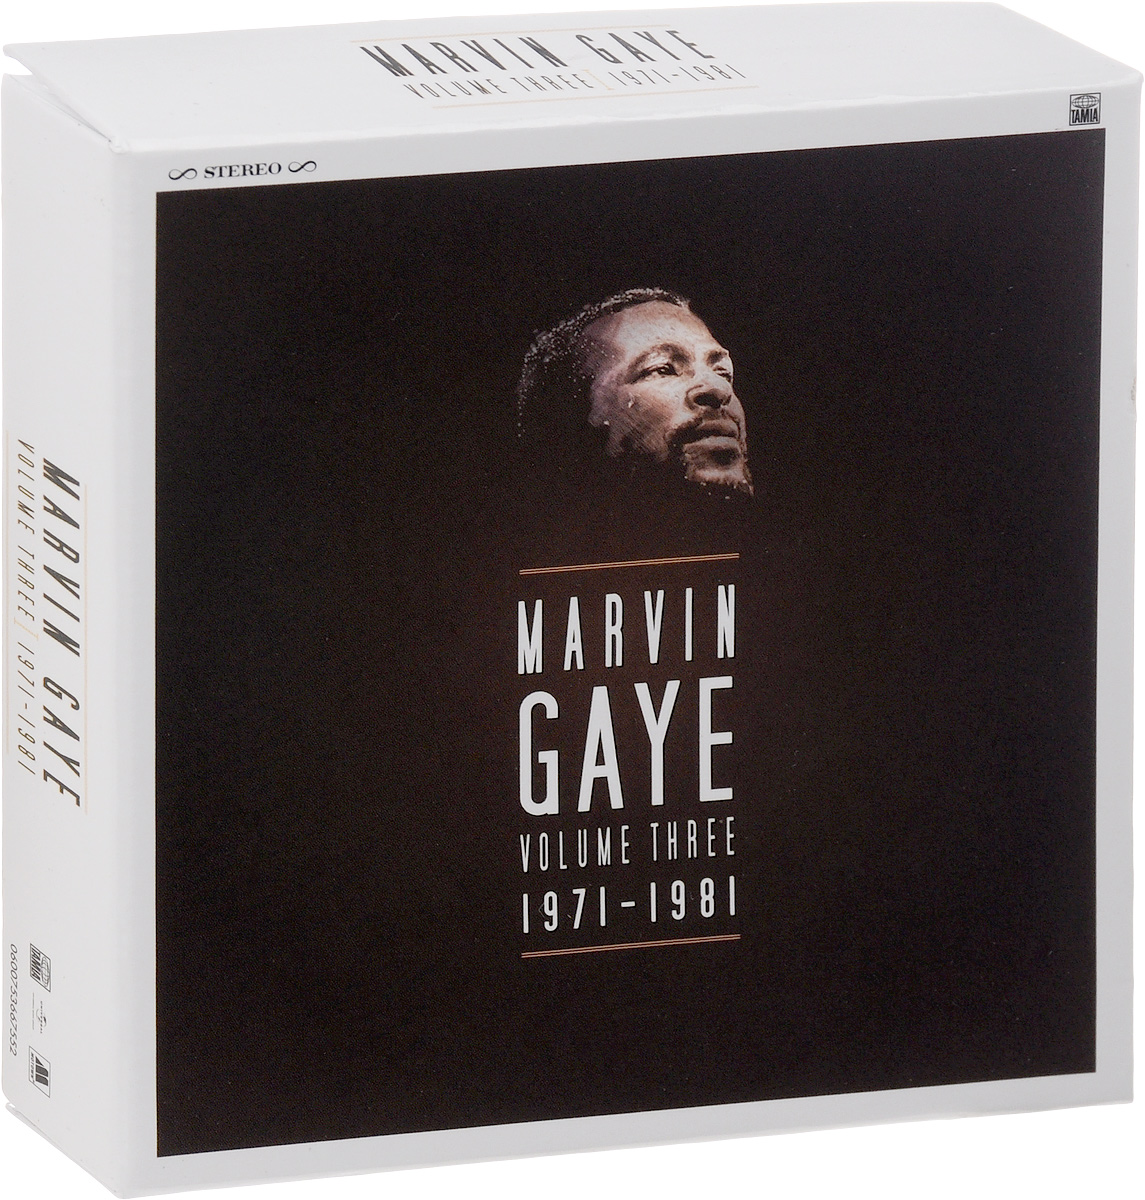 Марвин Гэй Marvin Gaye. Volume Three. 1971 - 1981 (7 CD) марвин гэй marvin gaye volume jne 1961 1965 7 lp